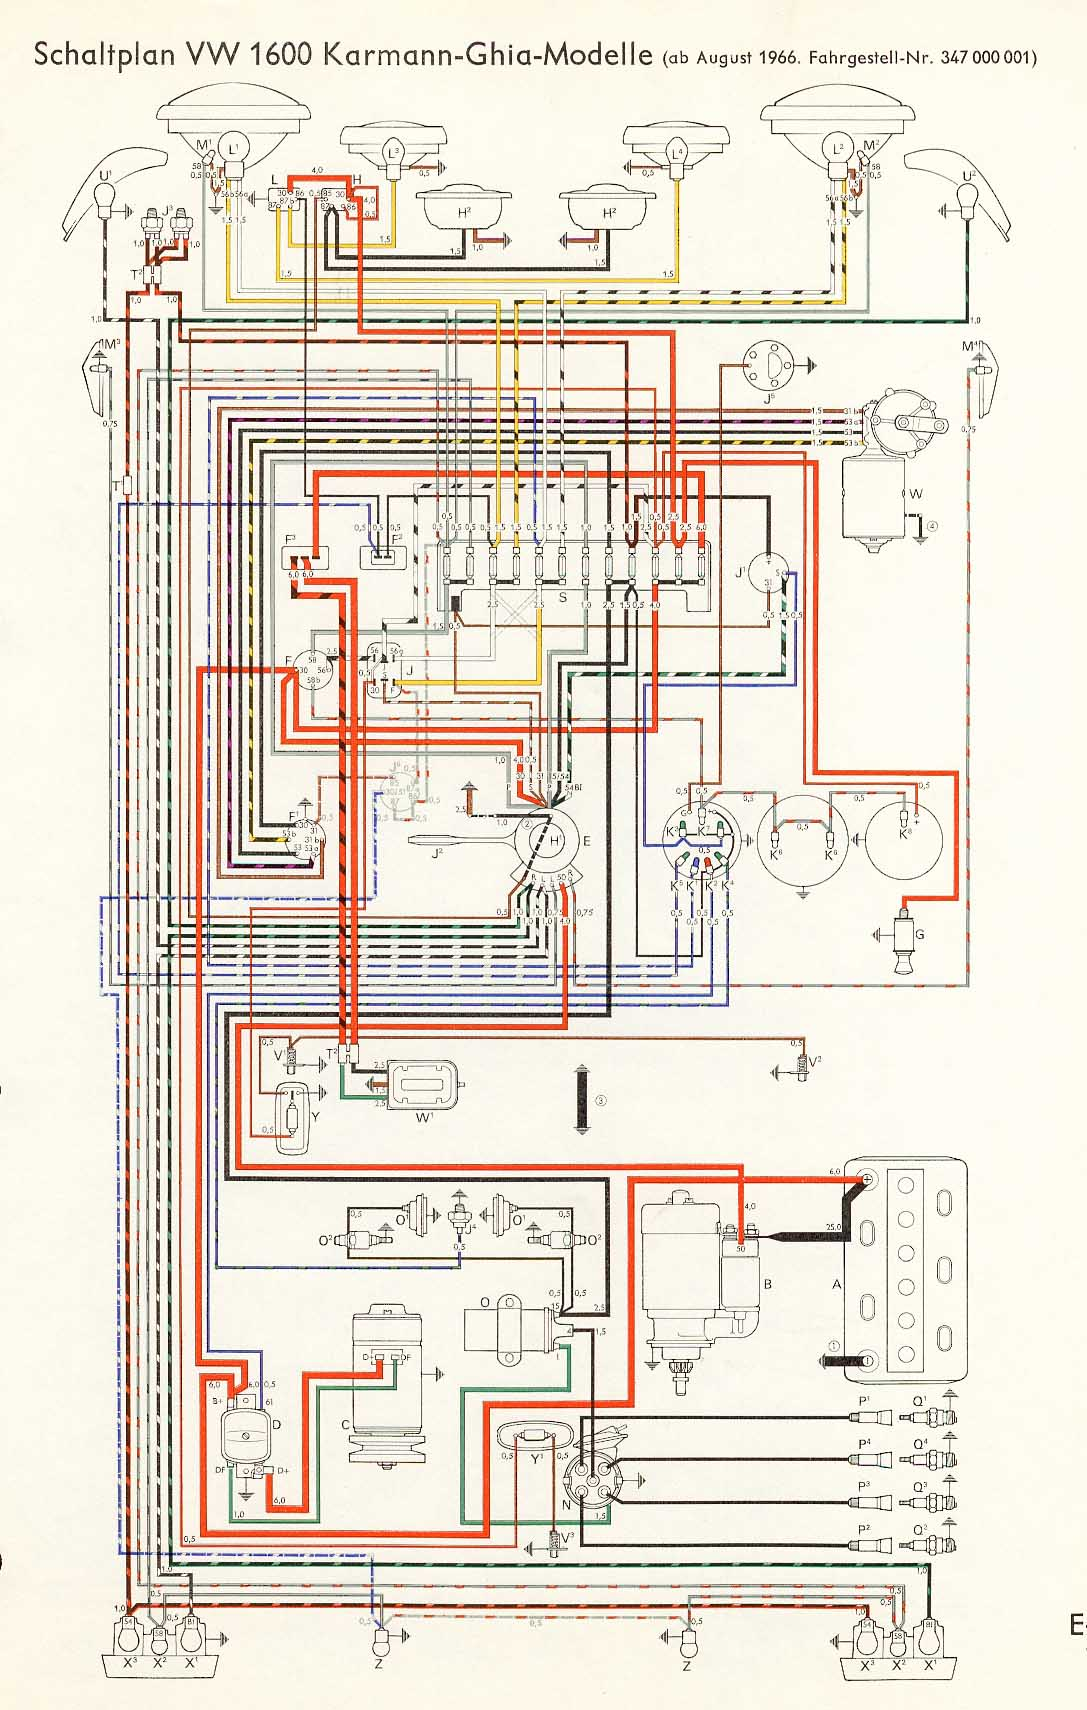 VW1600KG_66 other diagrams 1971 karmann ghia wiring diagram at couponss.co